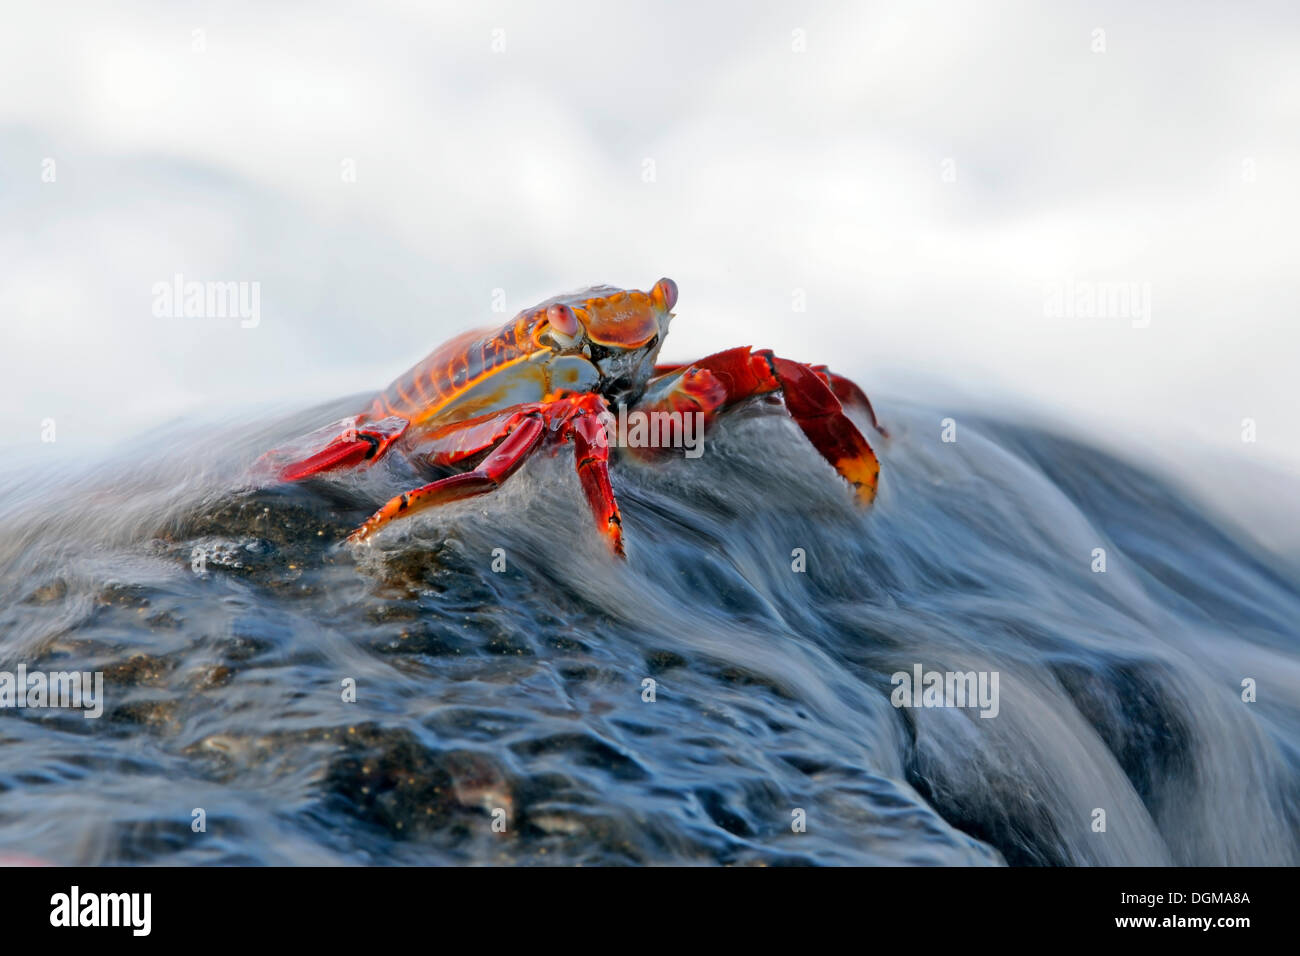 Red Rock Crab or Sally Lightfoot Crab (Grapsus Grapsus) being washed over by a wave, Espanola Island, Galapagos - Stock Image